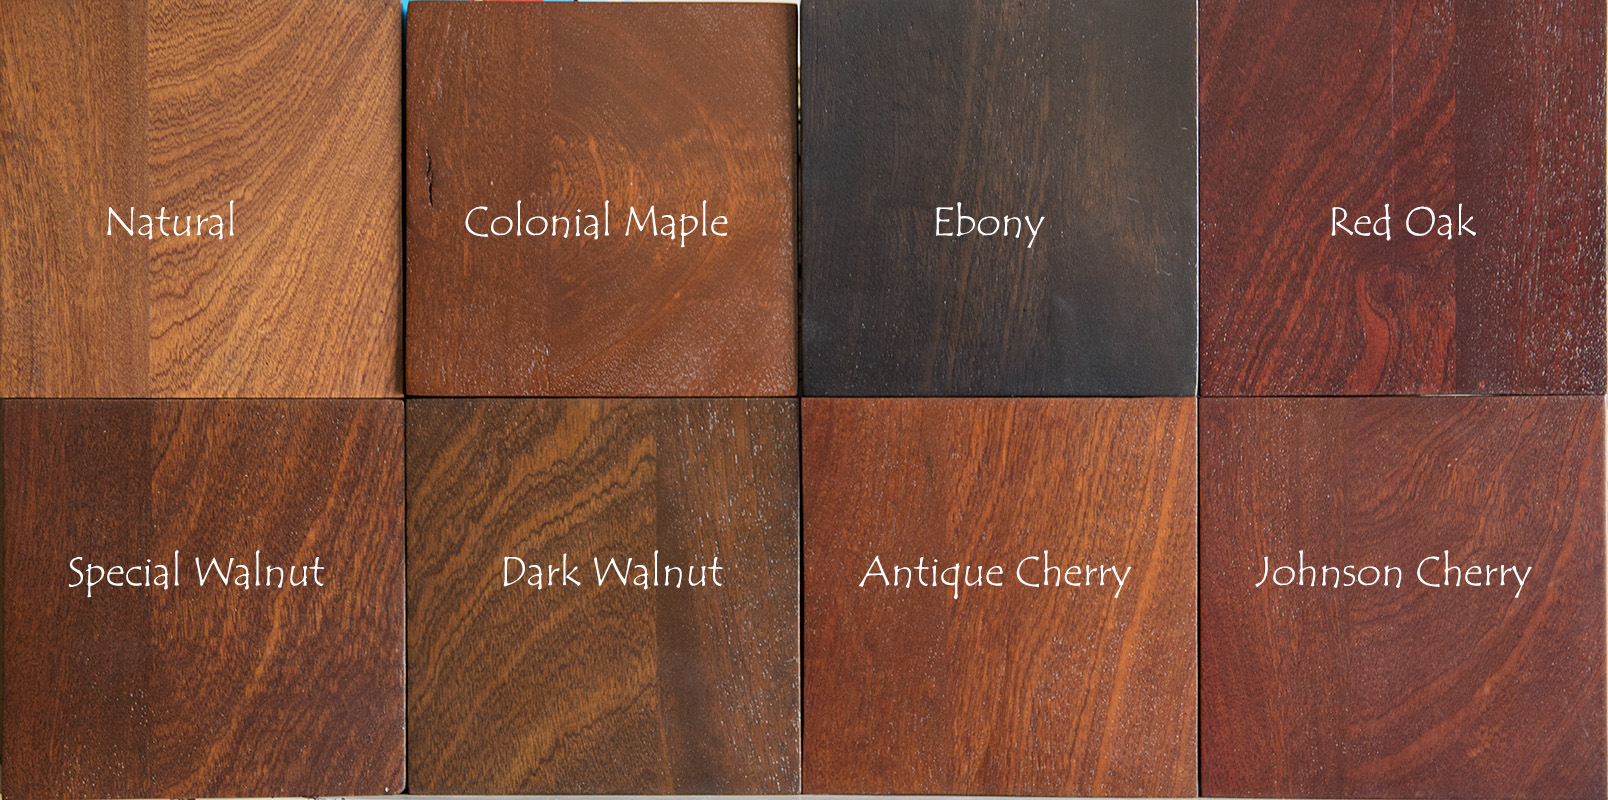 Sapele African Mahogany Stain Samples